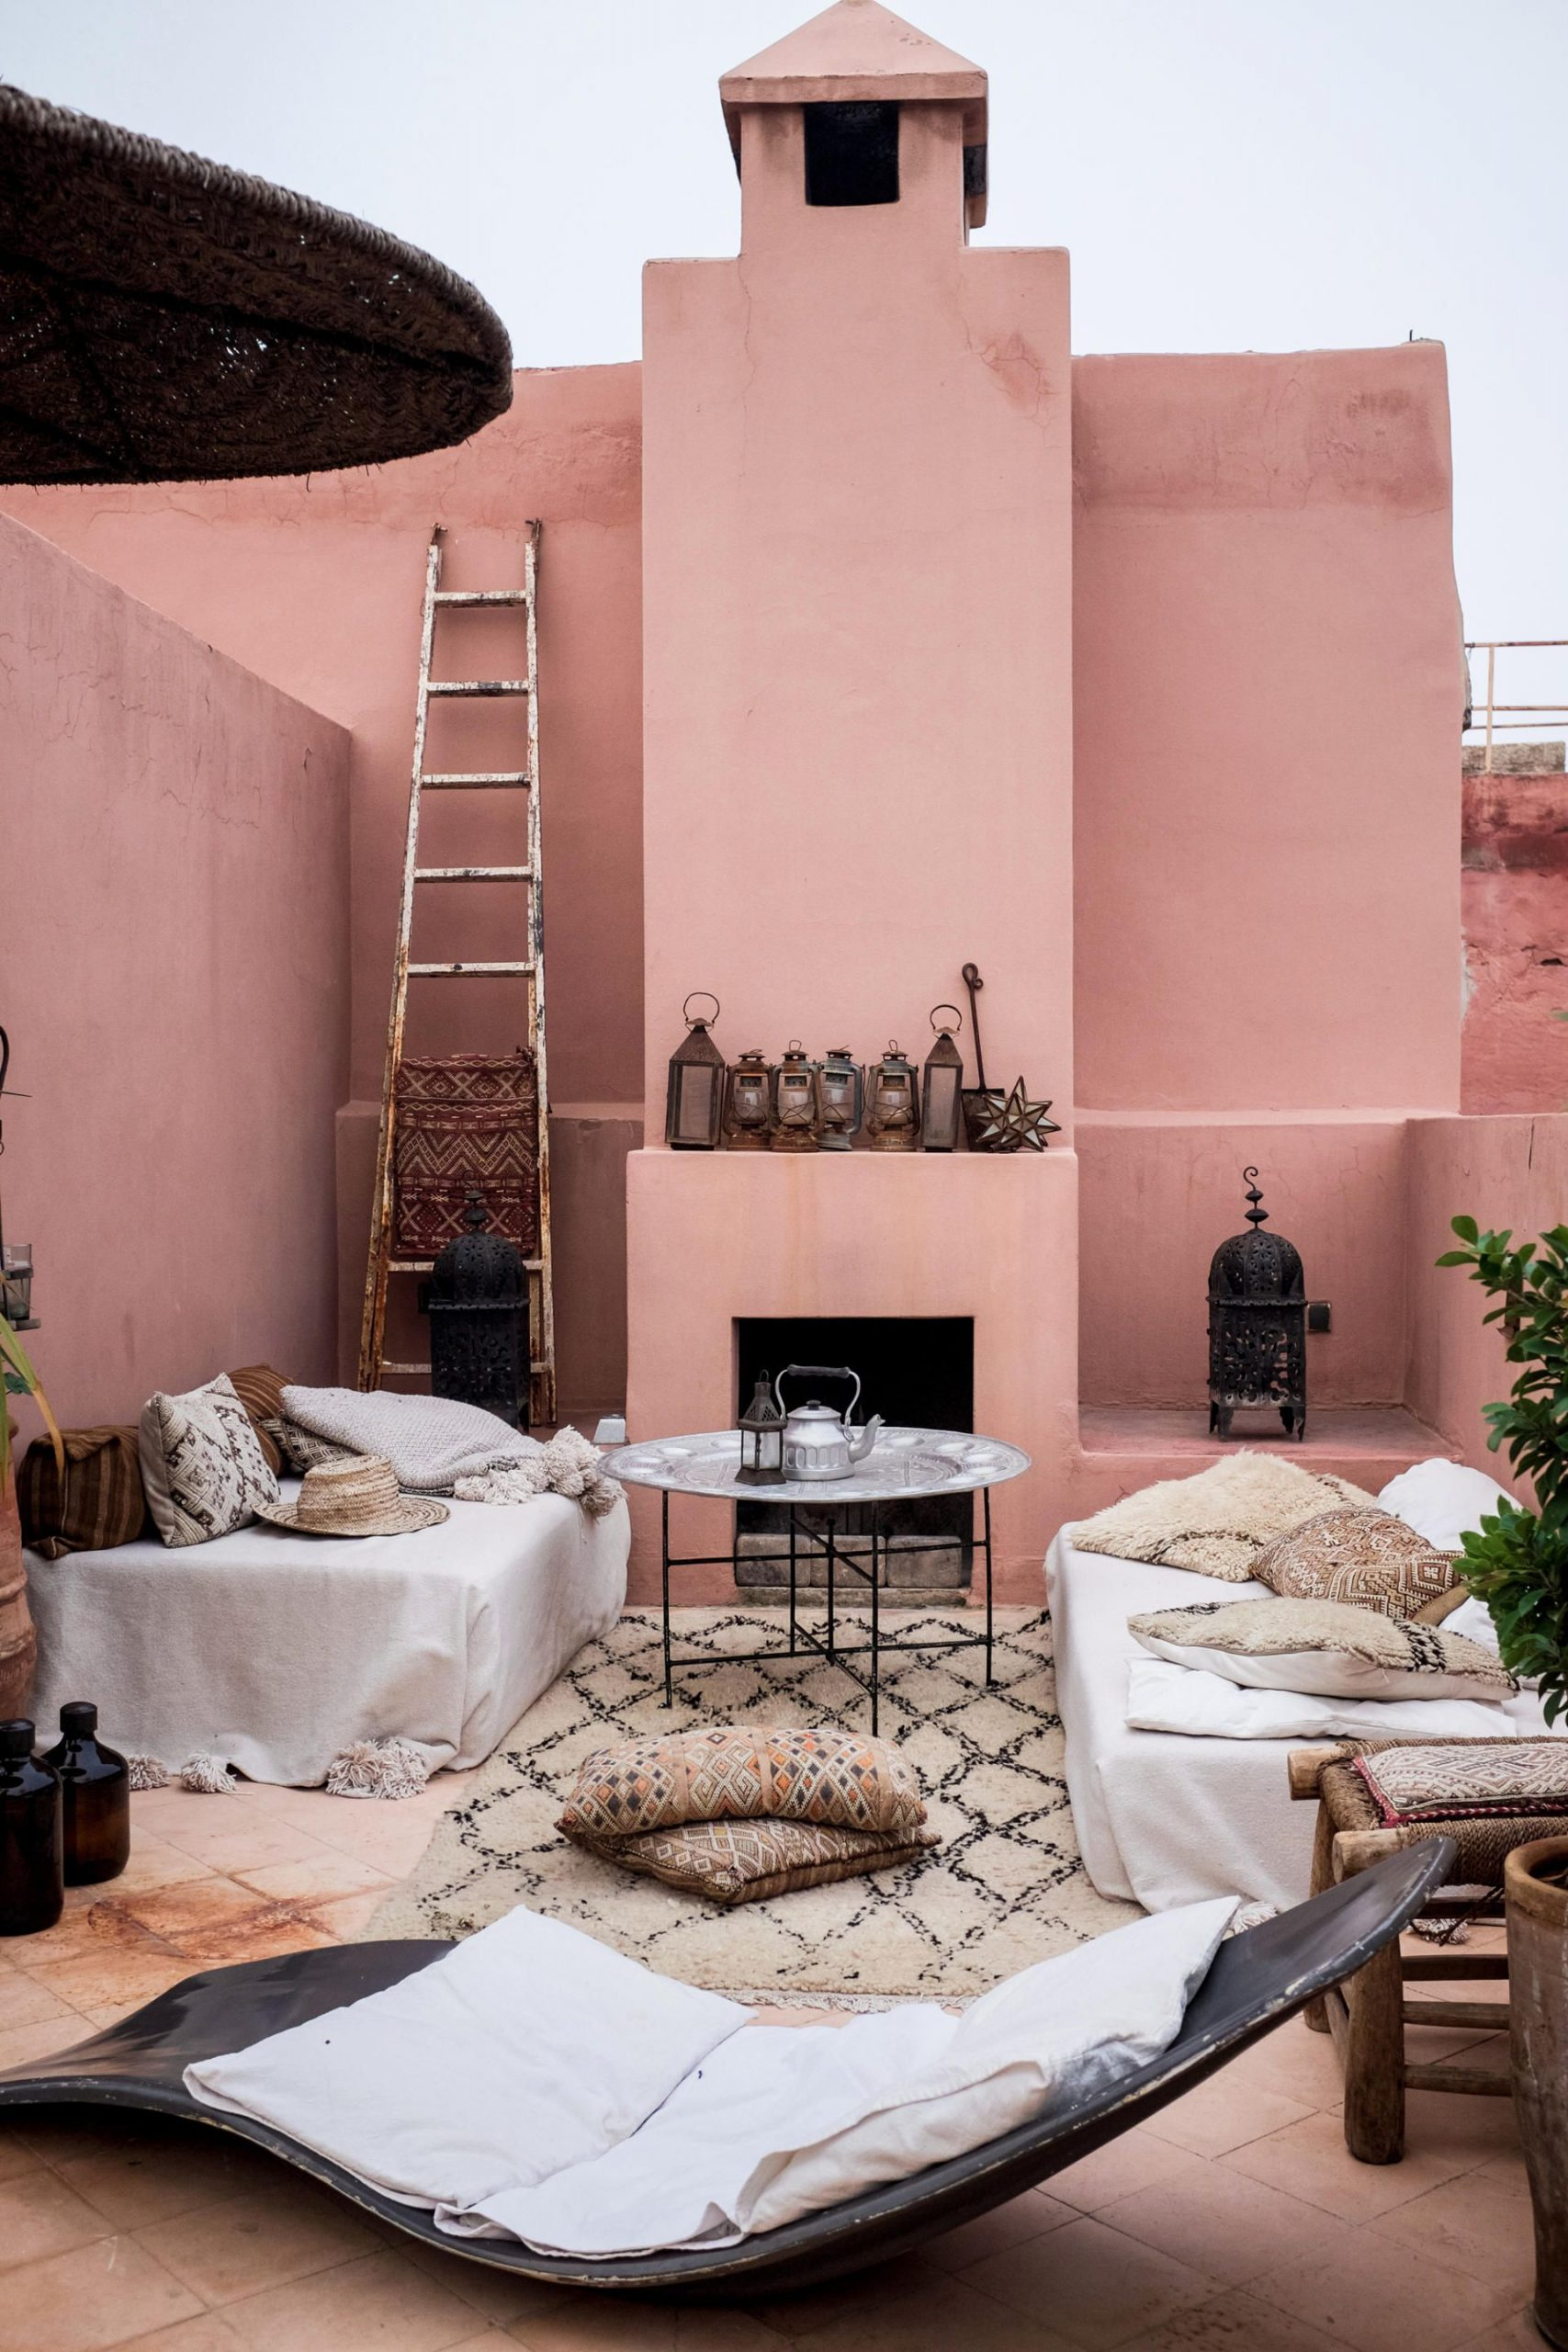 Airbnb Riad, Marrakech I Stayed In The Most Amazing Airbnb ... destiné Riad Marrakech Avec Piscine